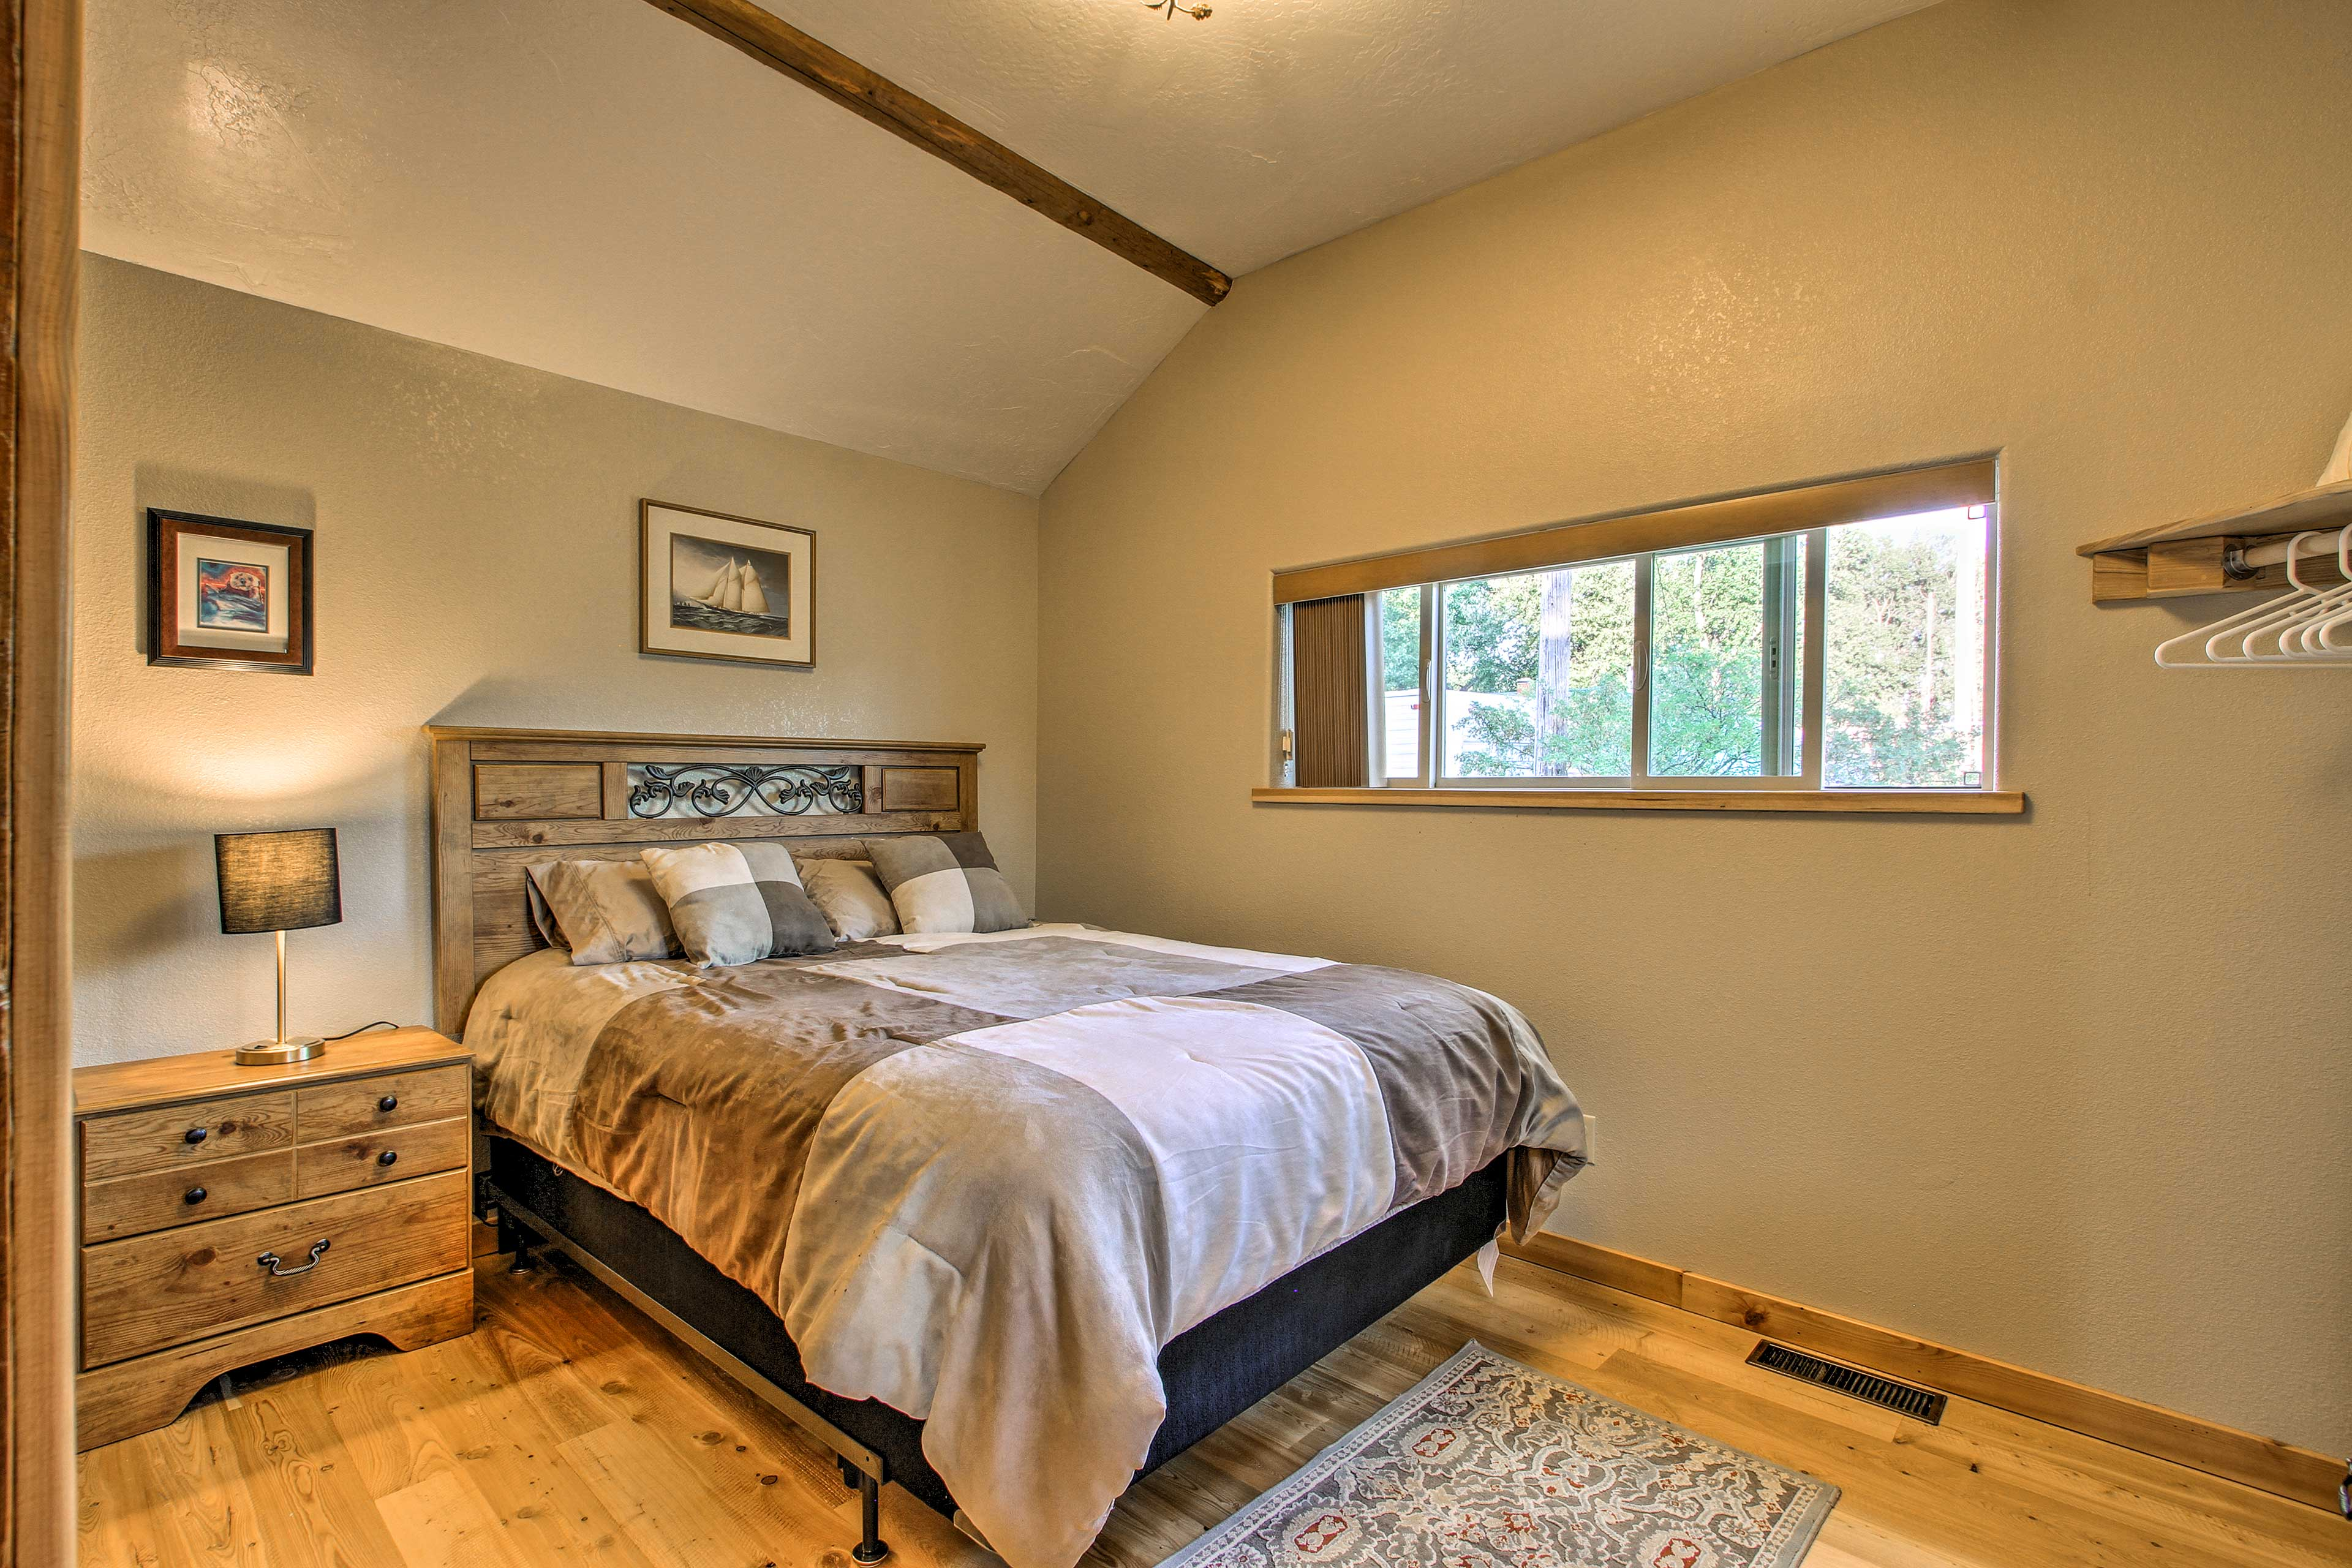 Rise and shine to plenty of natural sunlight!